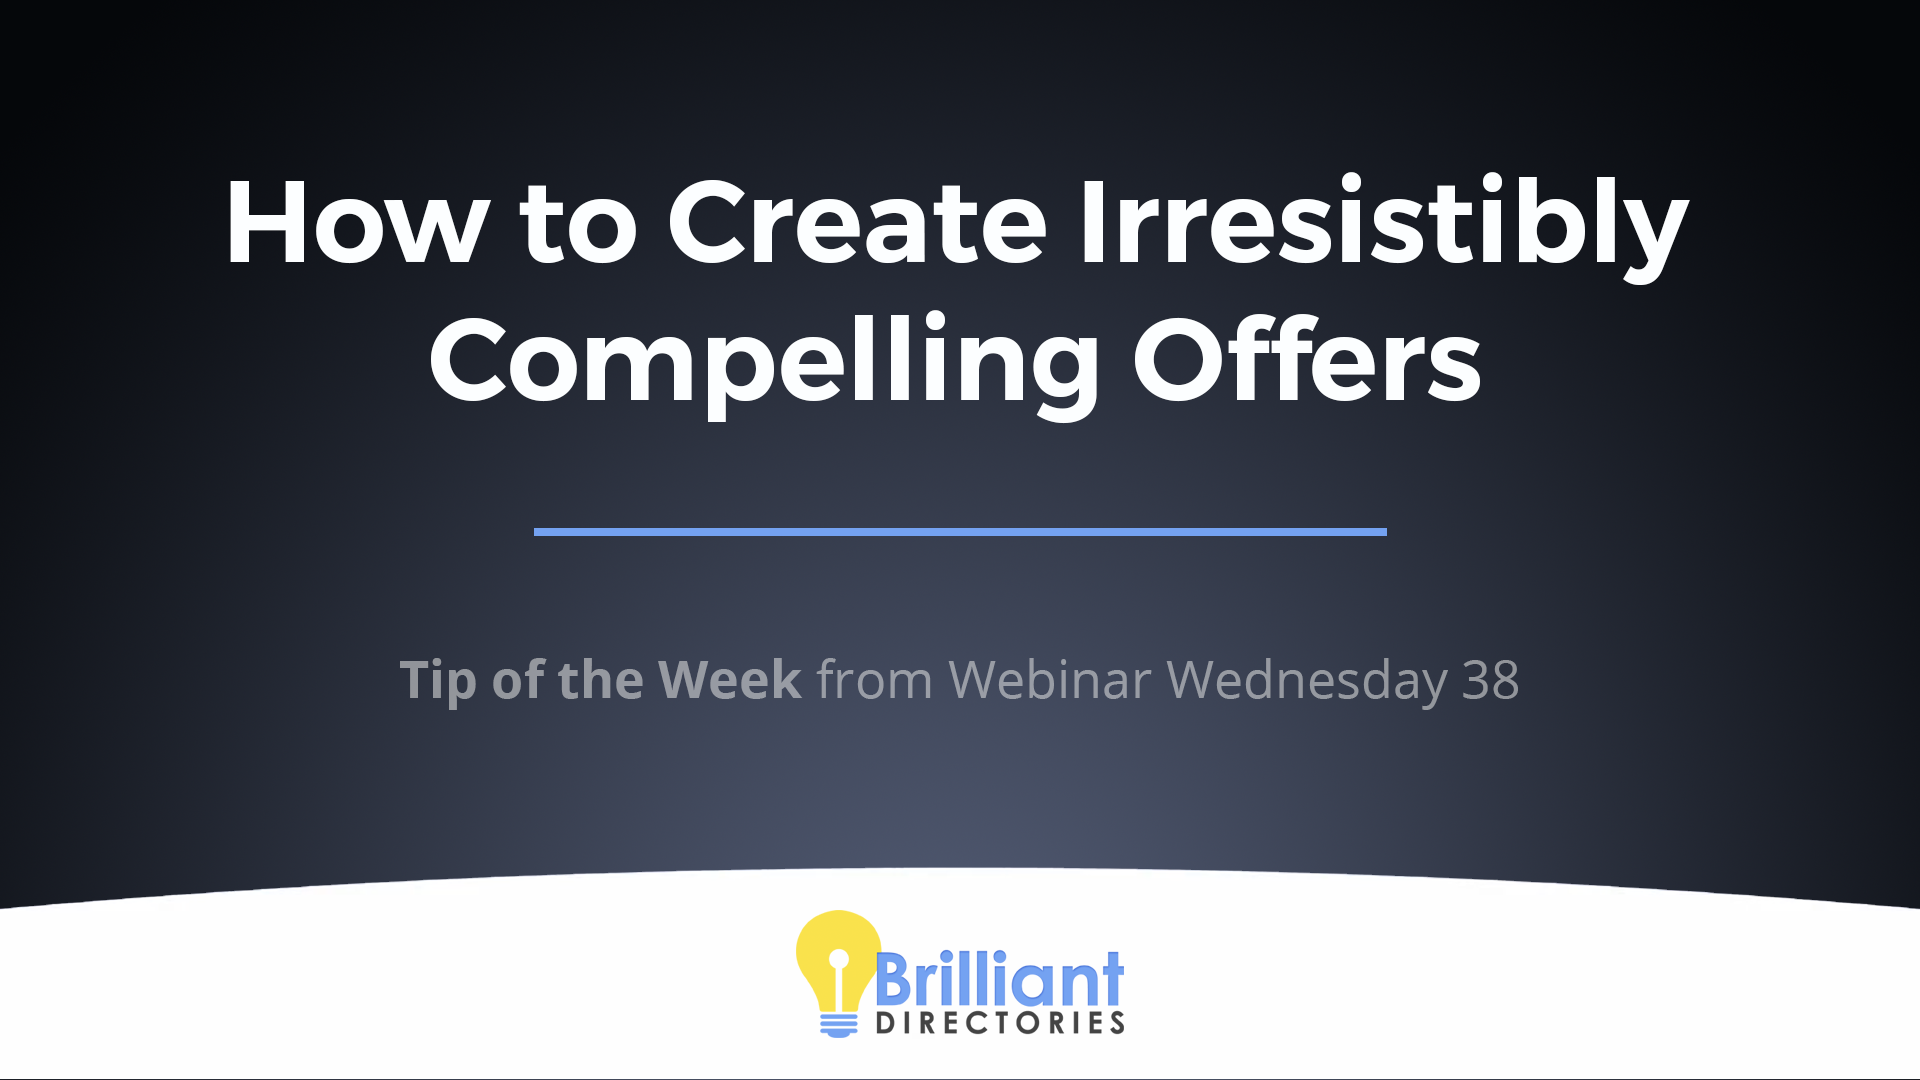 https://www.brilliantdirectories.com/blog/master-class-5-ways-to-close-more-sales-in-any-industry-directory-website-tips